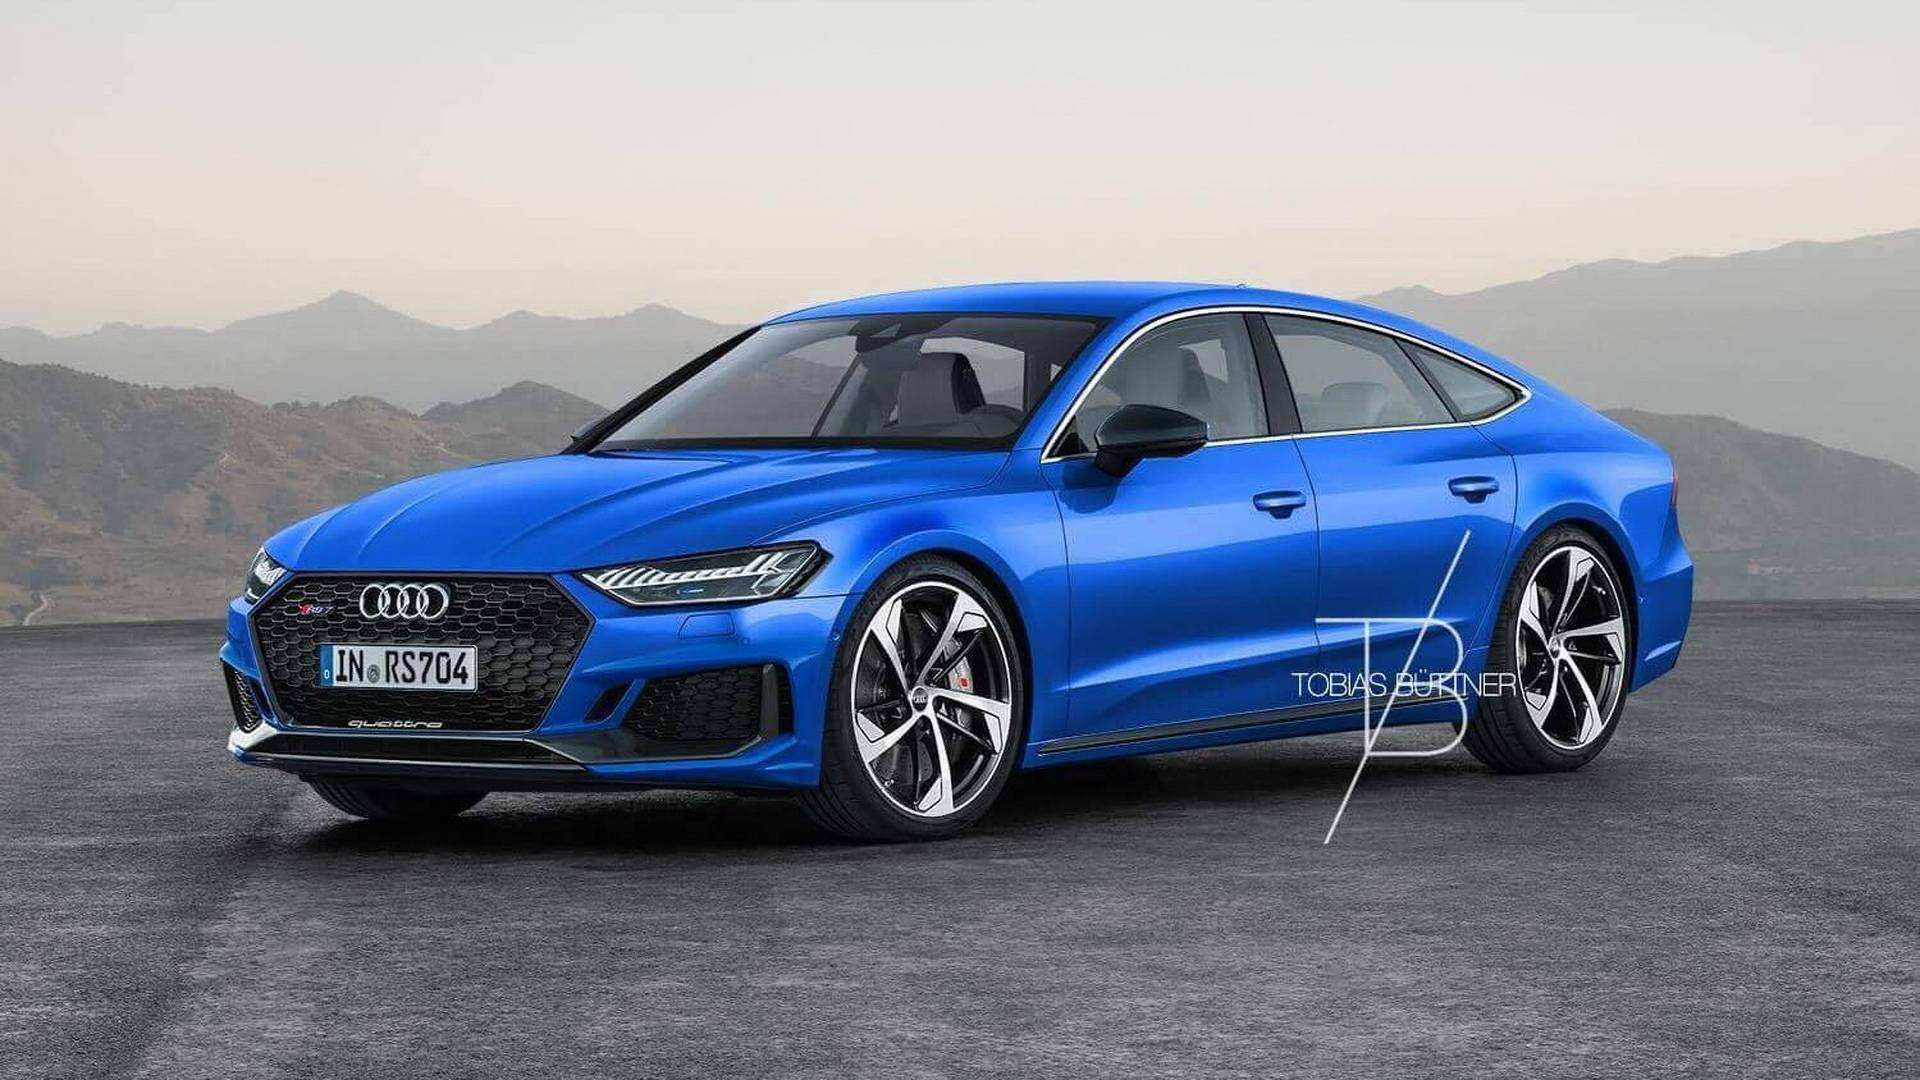 79 New Audi Hybrid 2020 Performance and New Engine for Audi Hybrid 2020